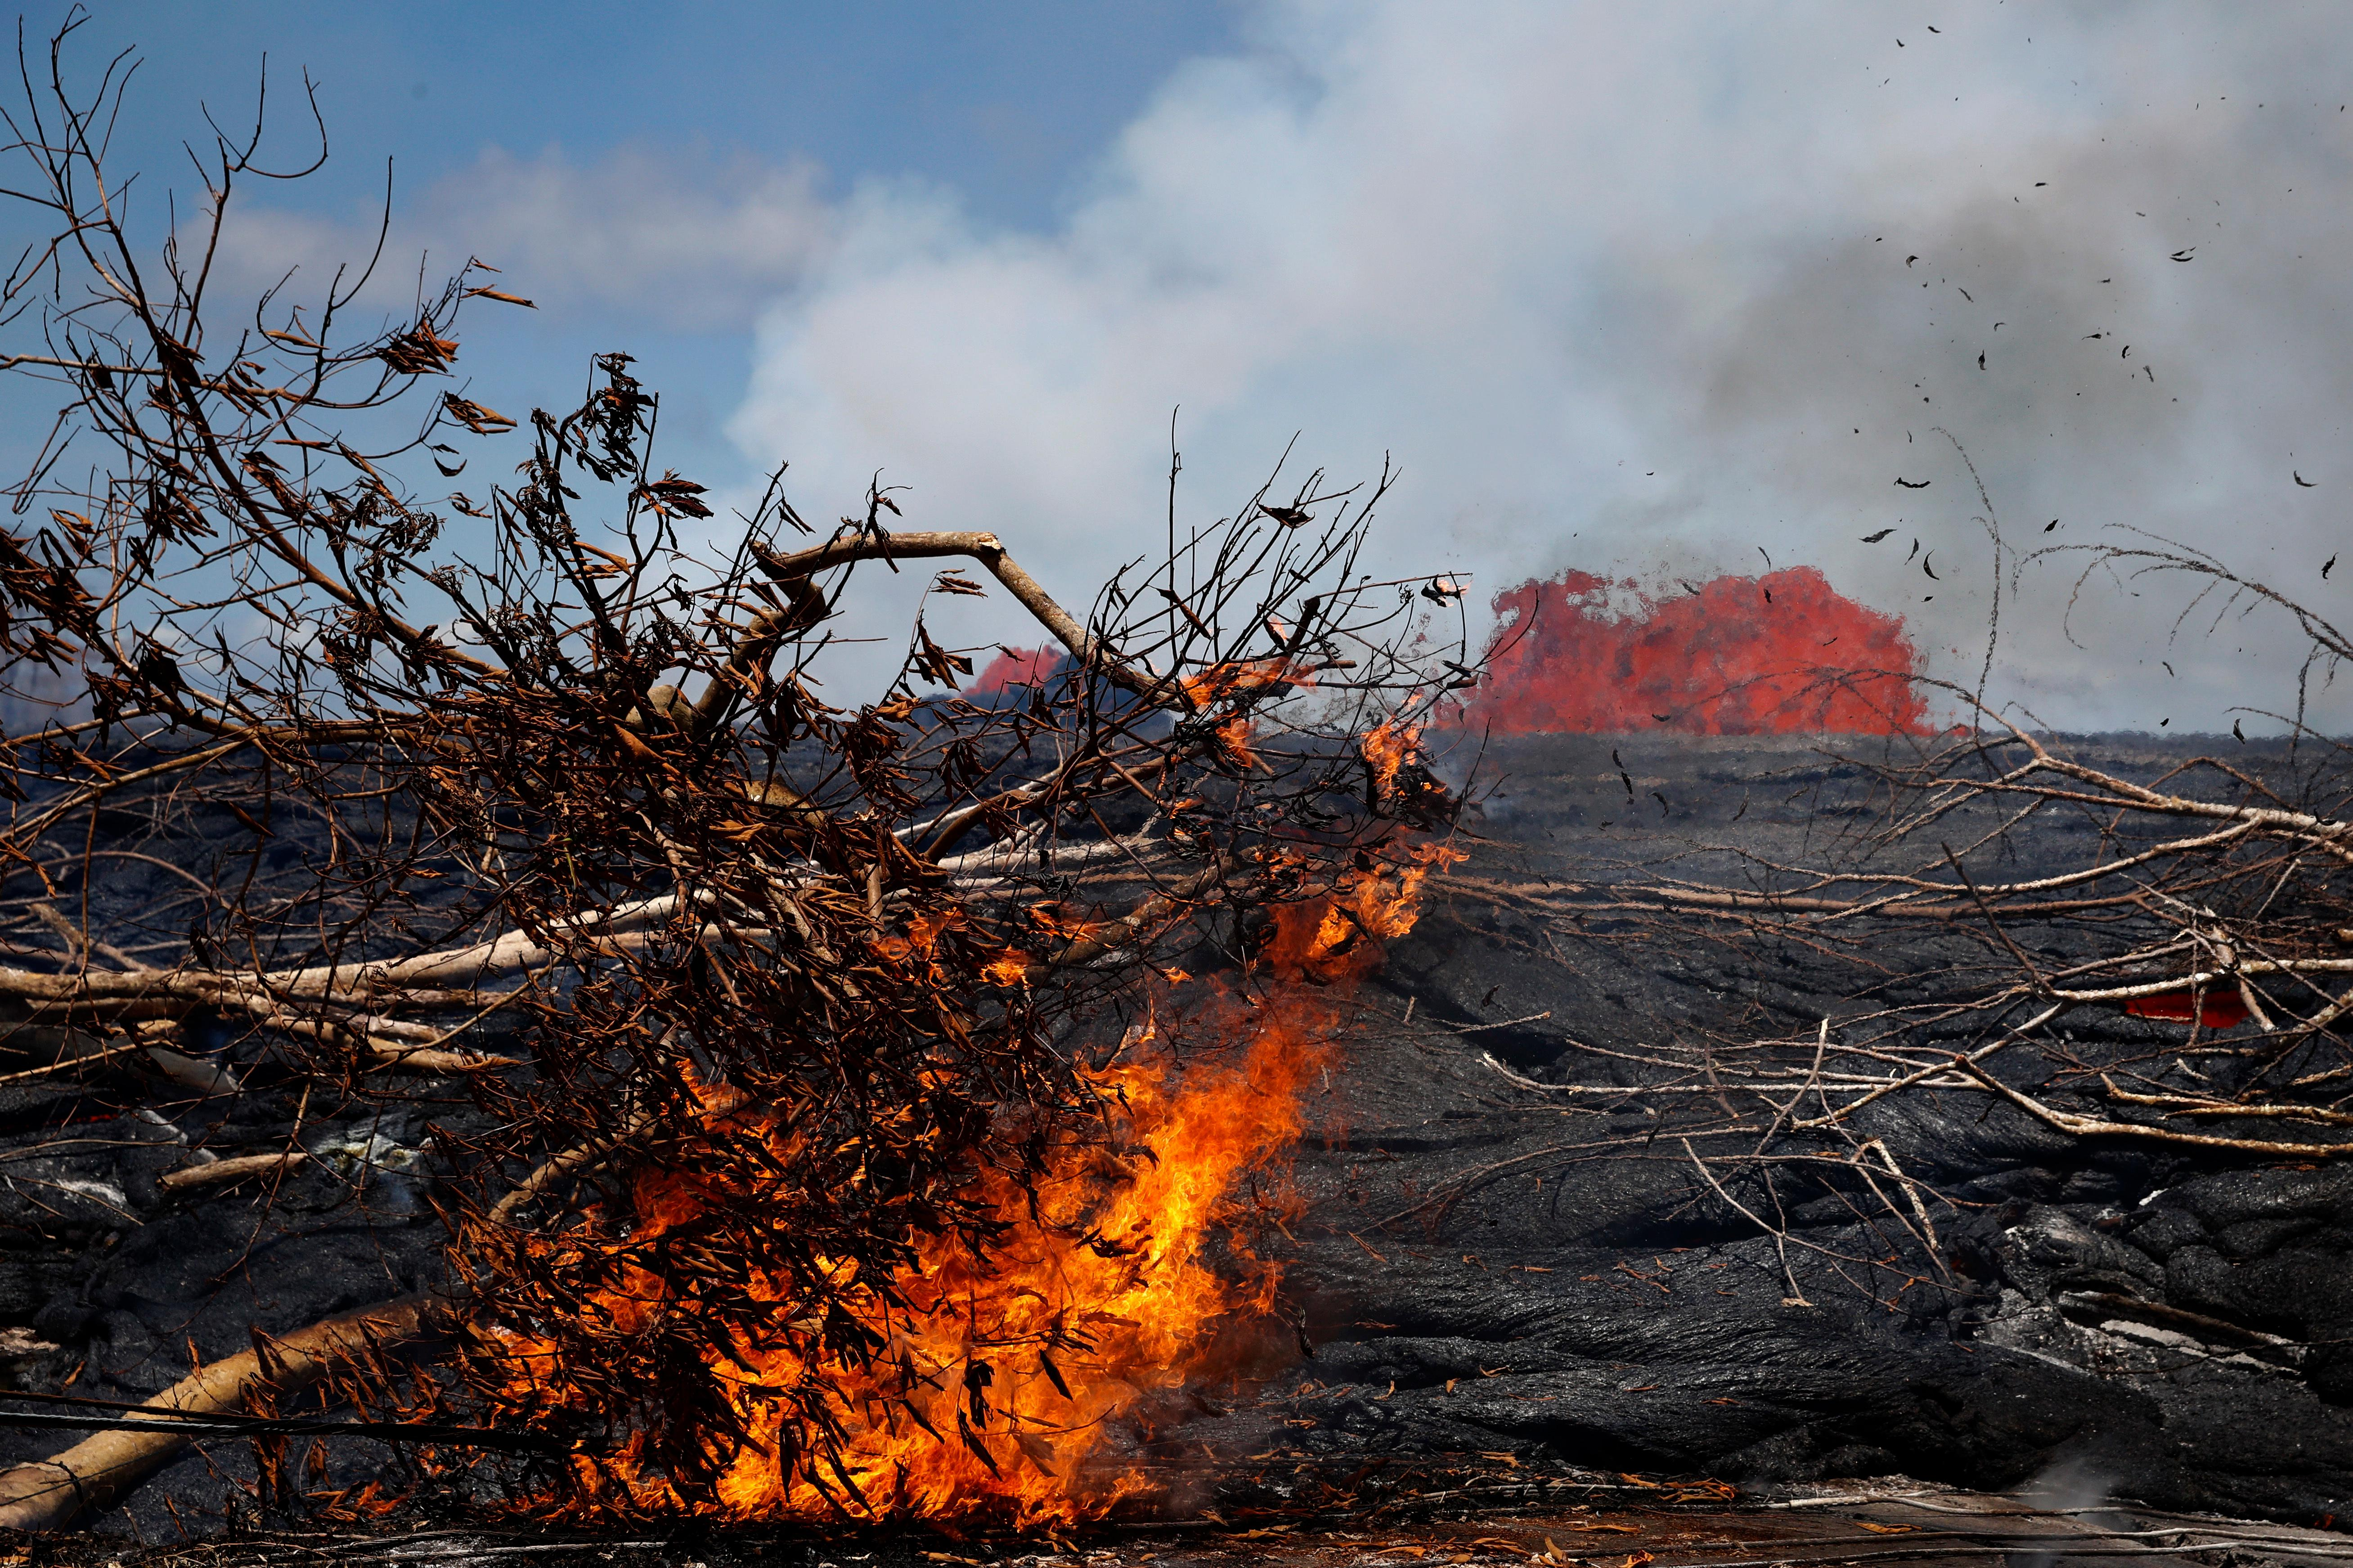 Lava burns a tree in the Leilani Estates subdivision near Pahoa, Hawaii, Tuesday, May 22, 2018. Authorities were racing Tuesday to close off production wells at a geothermal plant threatened by a lava flow from Kilauea volcano on Hawaii's Big Island. (AP Photo/Jae C. Hong)